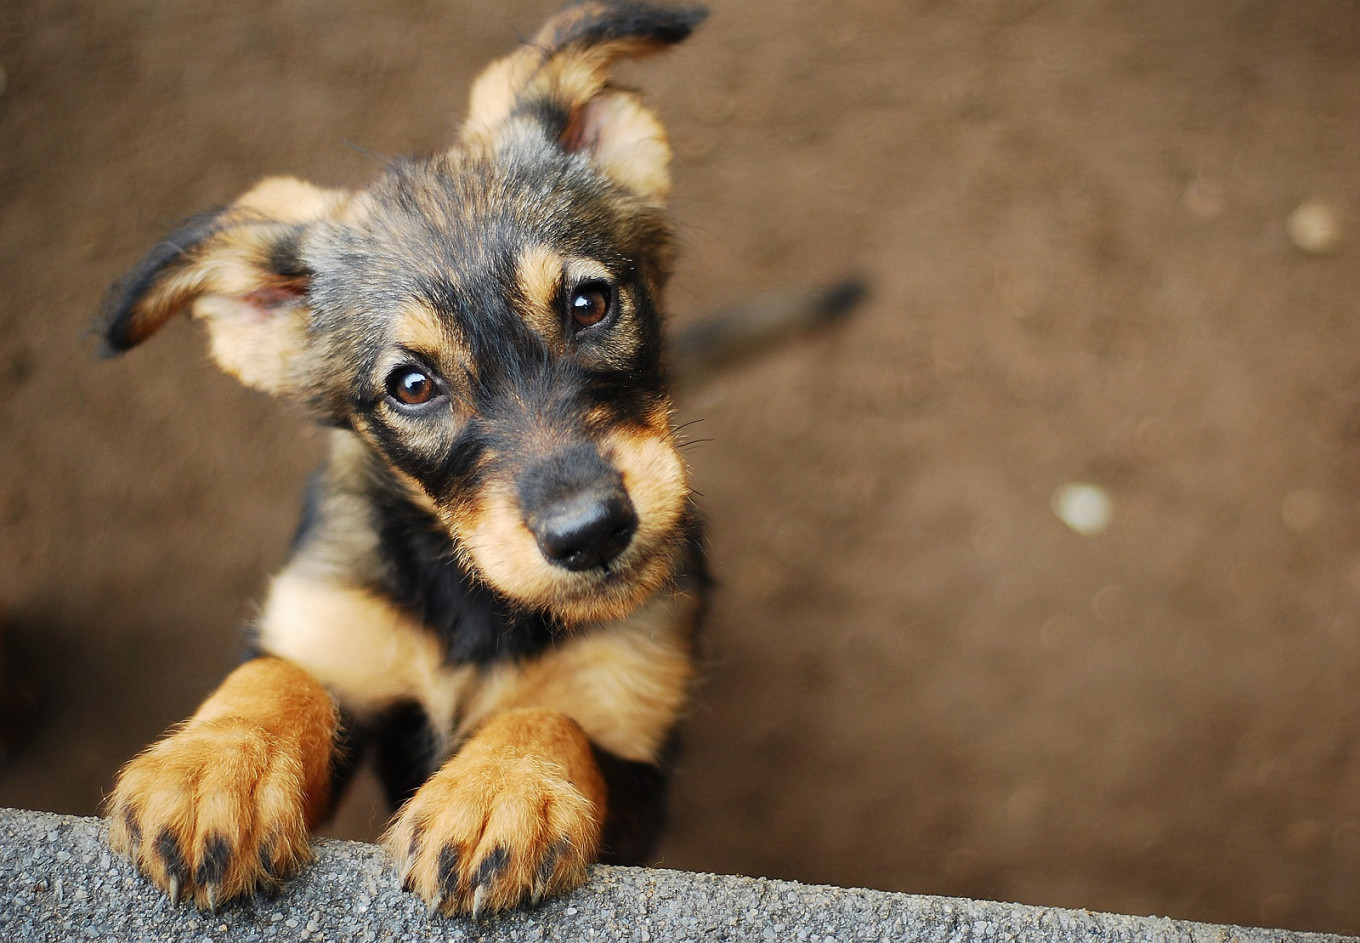 Puppy scammers target lonely Aussies during lockdown